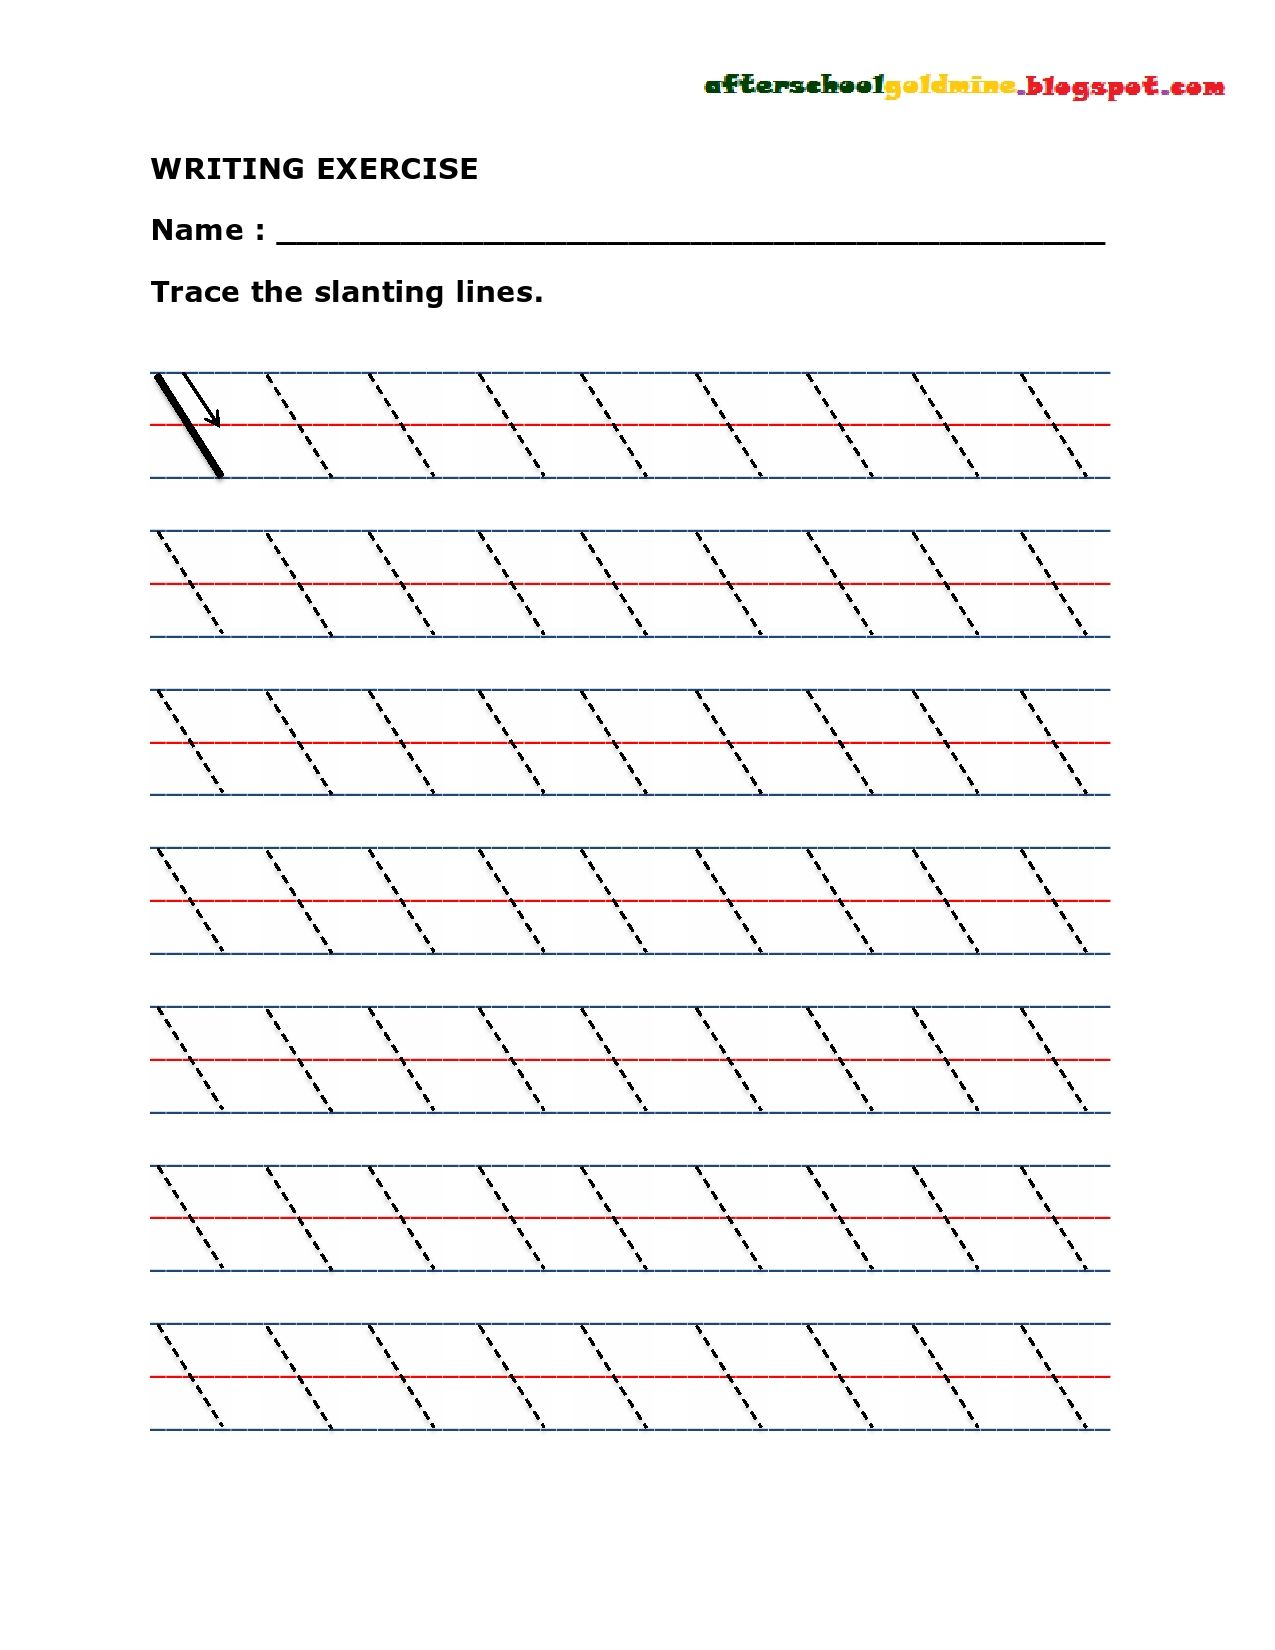 Practice Writing Slanting Or Diagonal Lines